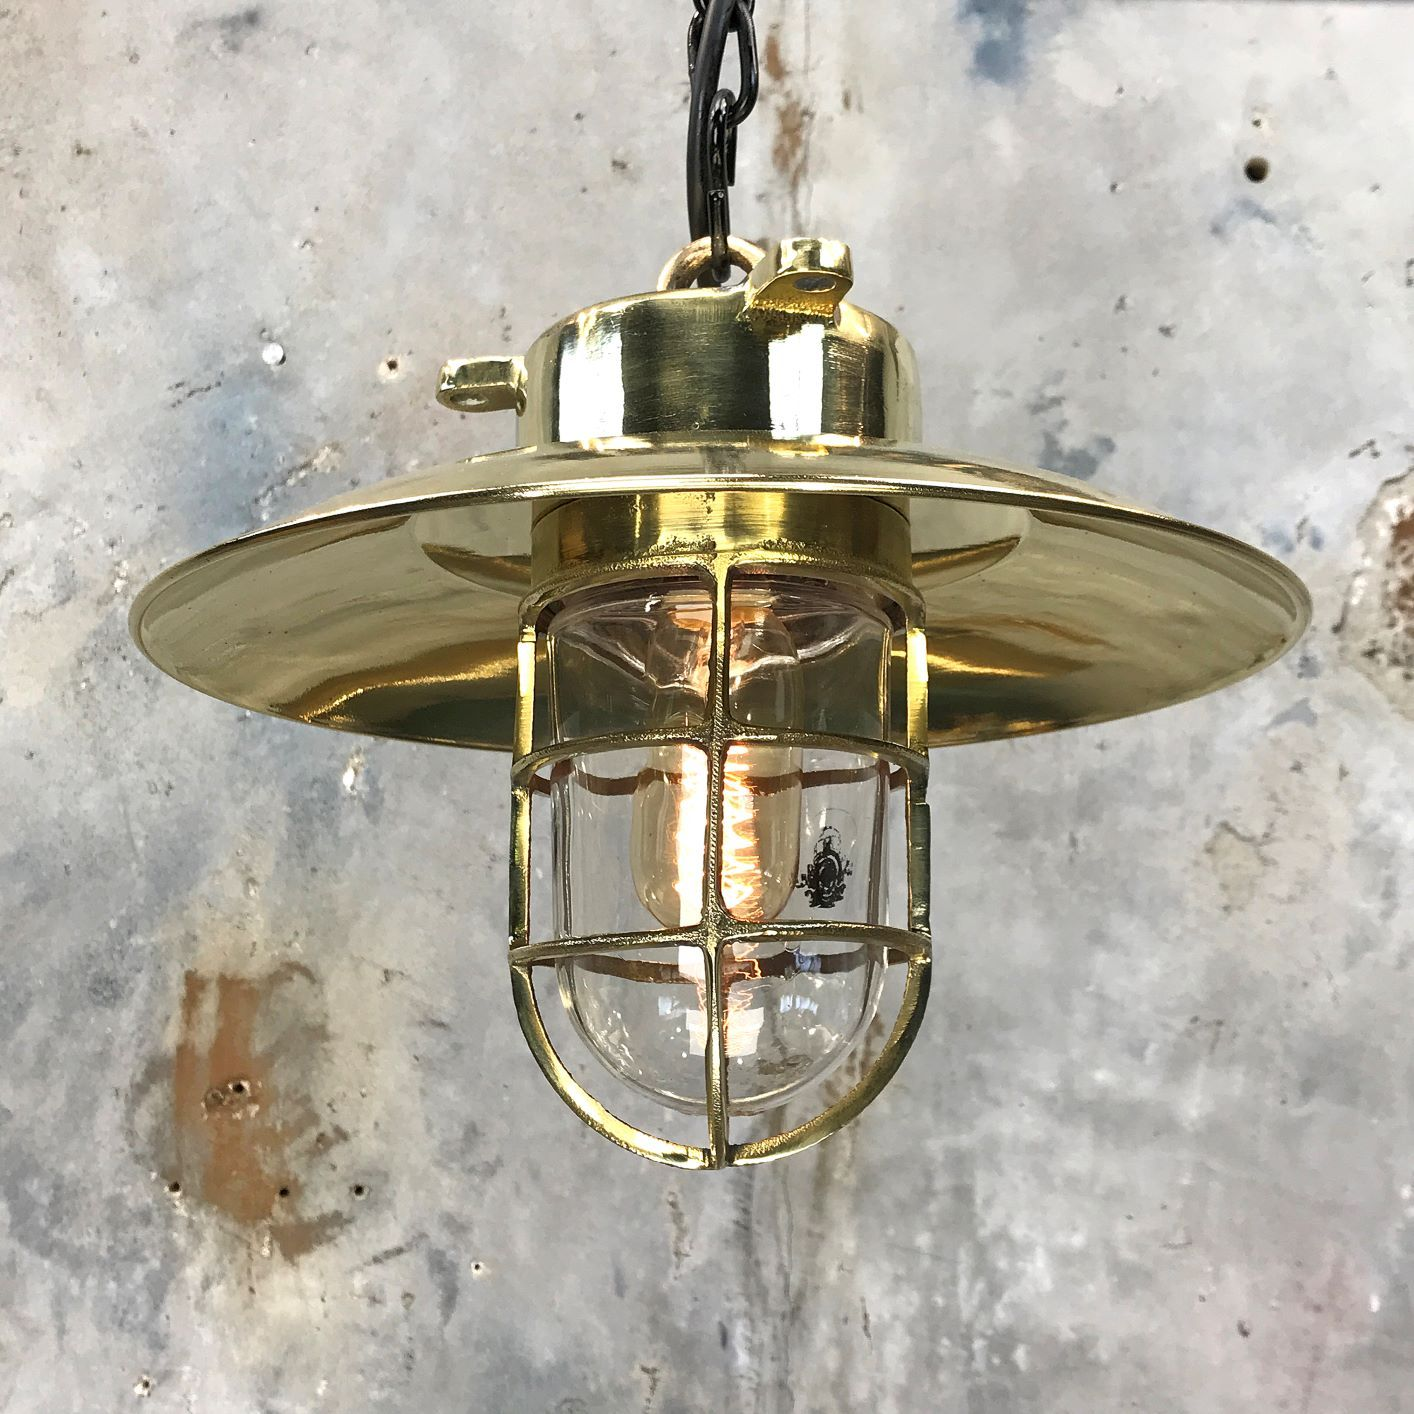 Explosion Proof Brass Cage Light in 2020 Brass cage